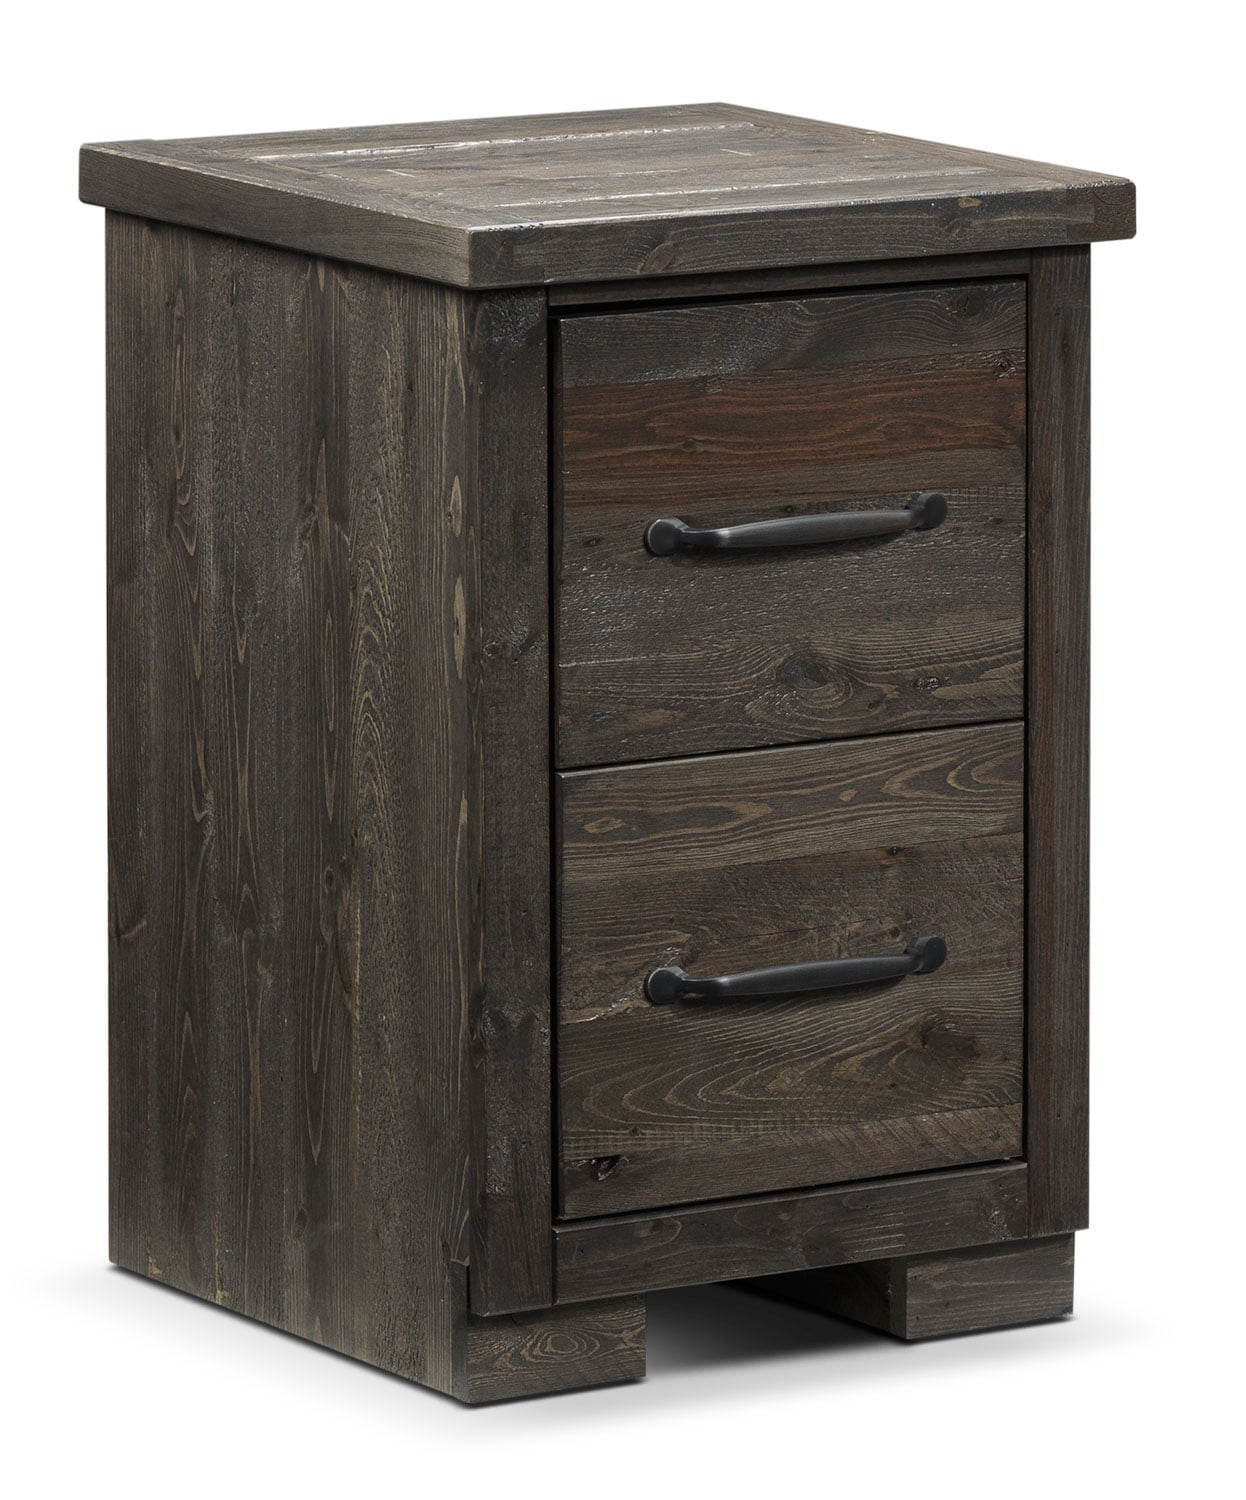 Bedroom Furniture - Pine Ridge 18-inch Night Table - Slate